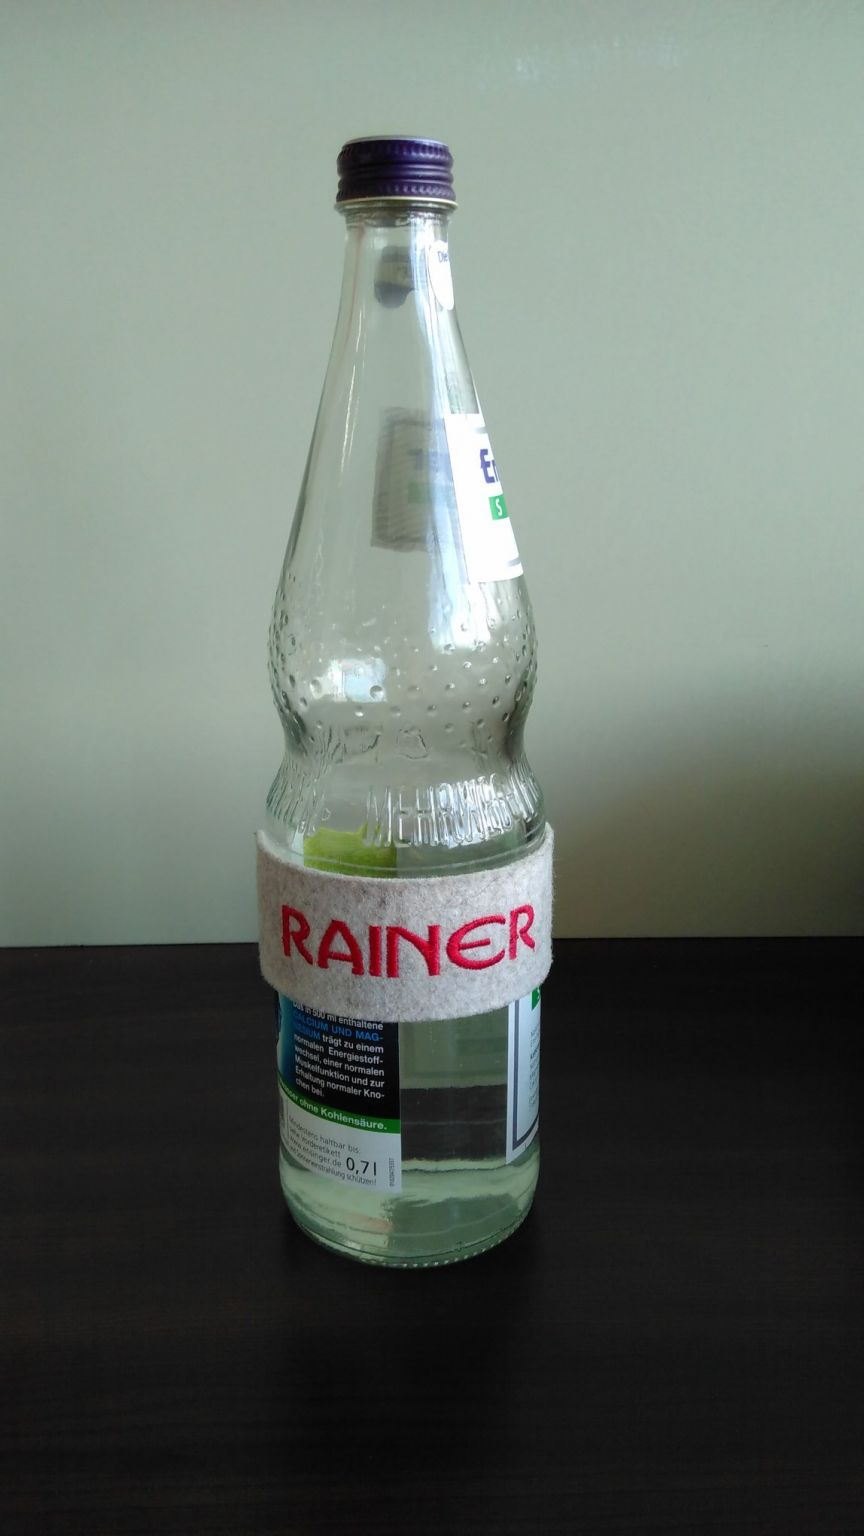 Name tag on water bottle: Rainer